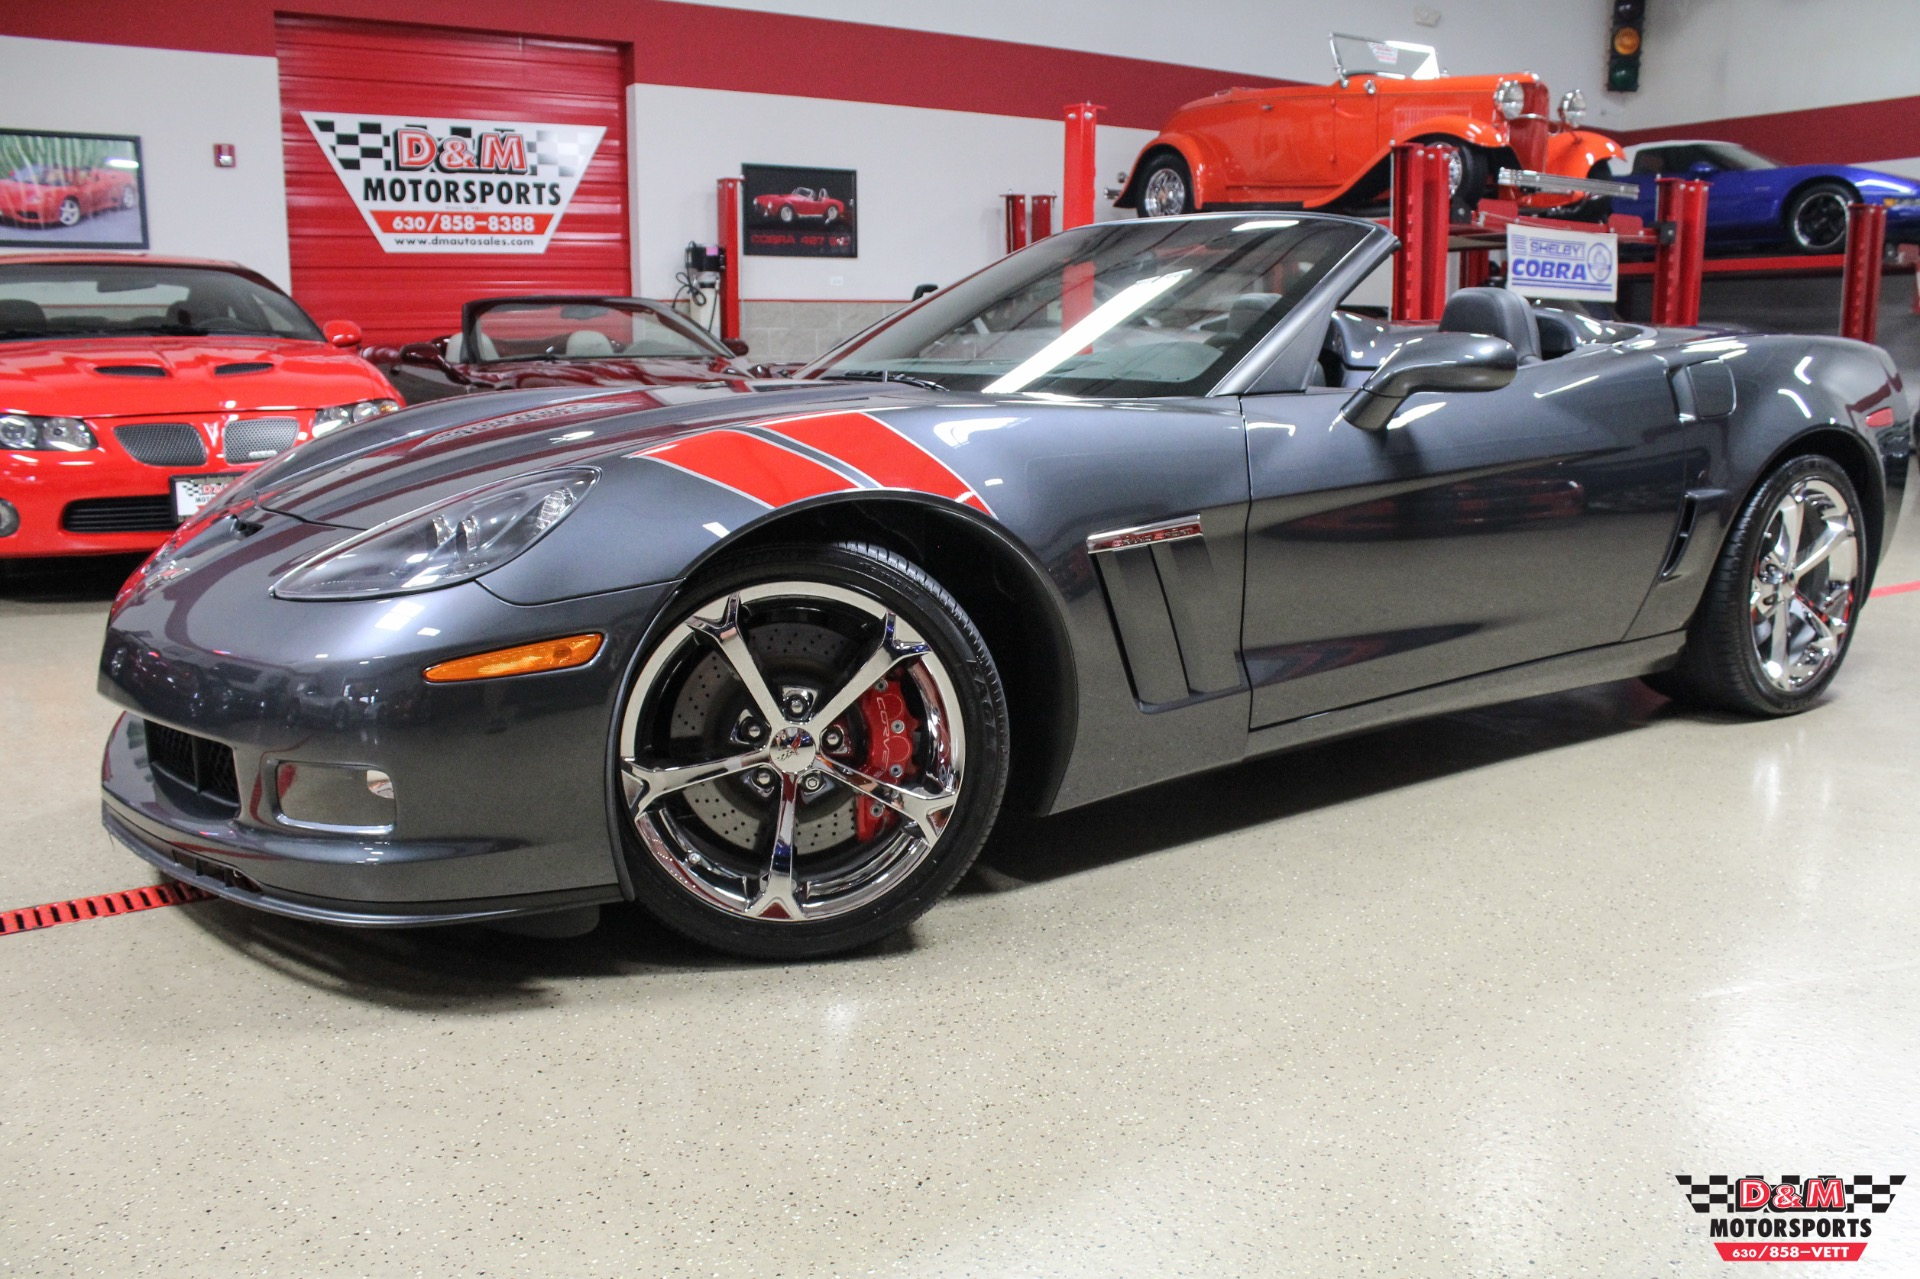 Prestige Motorcars Of York Corvettes For Sale Pa Autos Post